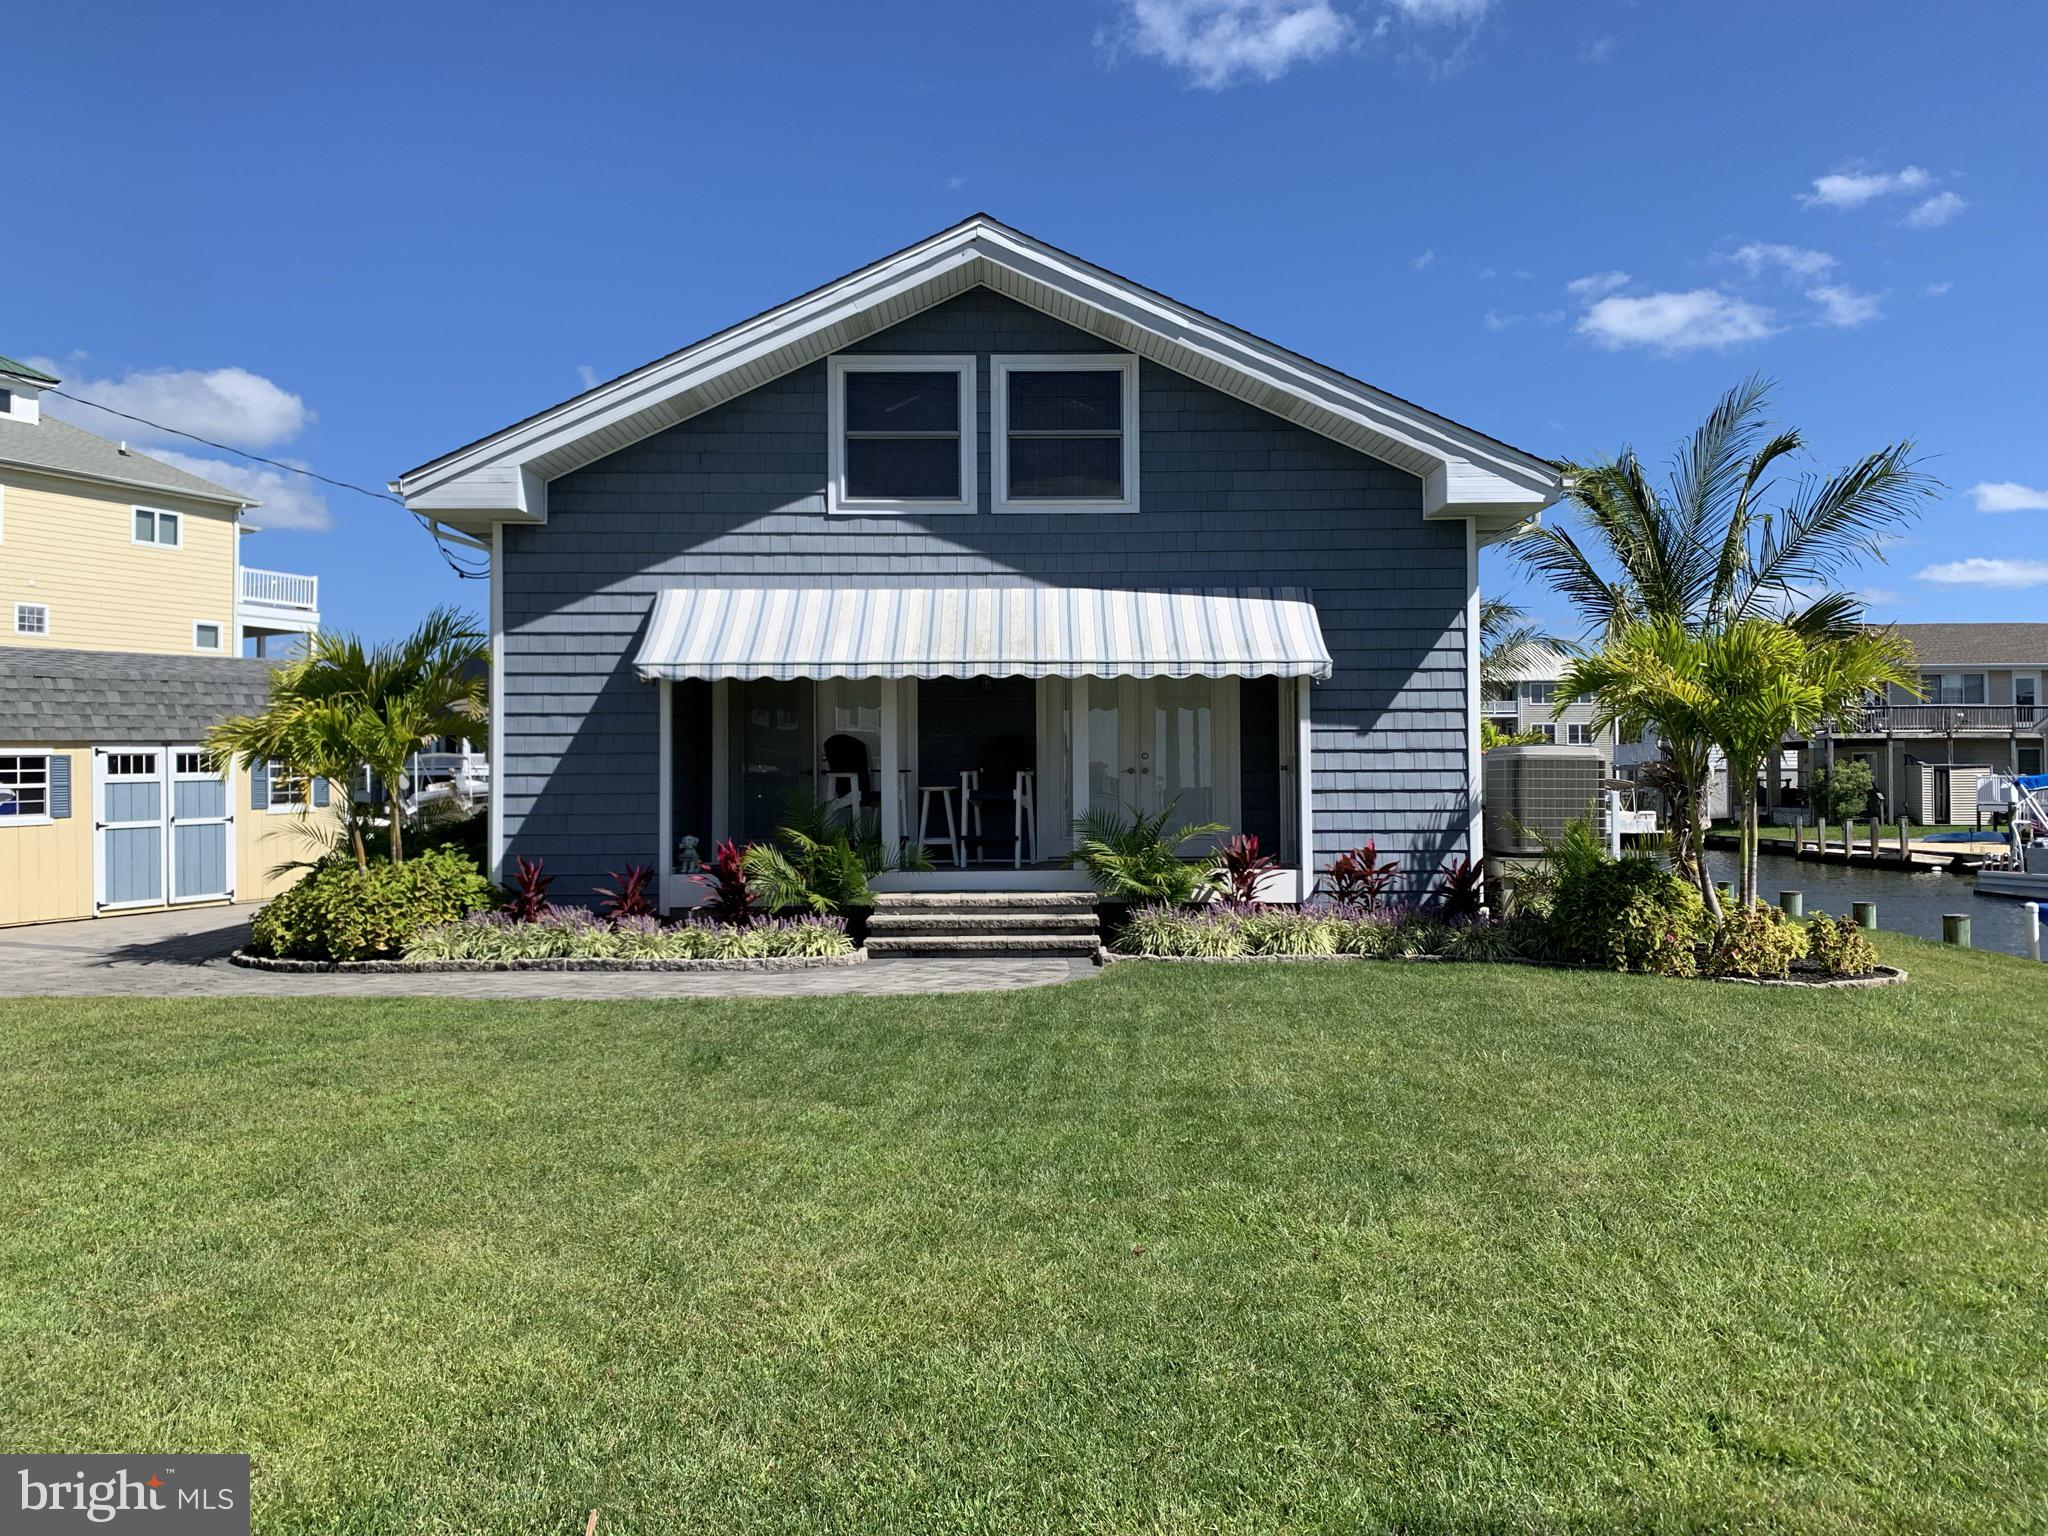 Beautiful, well maintained coastal cottage on unique two -sided waterfront lot boasting 150 ft +\- of bulkhead and water frontage, with canal and bay view less than one mile to the Atlantic Ocean and the Delaware beaches. Rich dark wood floors, open beam ceilings, and a comfortable, open Key West vibe interior completes this cottage. The outdoor impeccable hard-scape and tropical landscaping,  completes the home. The perfect location- close to the beach, abundant boat dockage and easy deep water access to the Big Assawoman Bay and the Ocean City back bays and inlet.